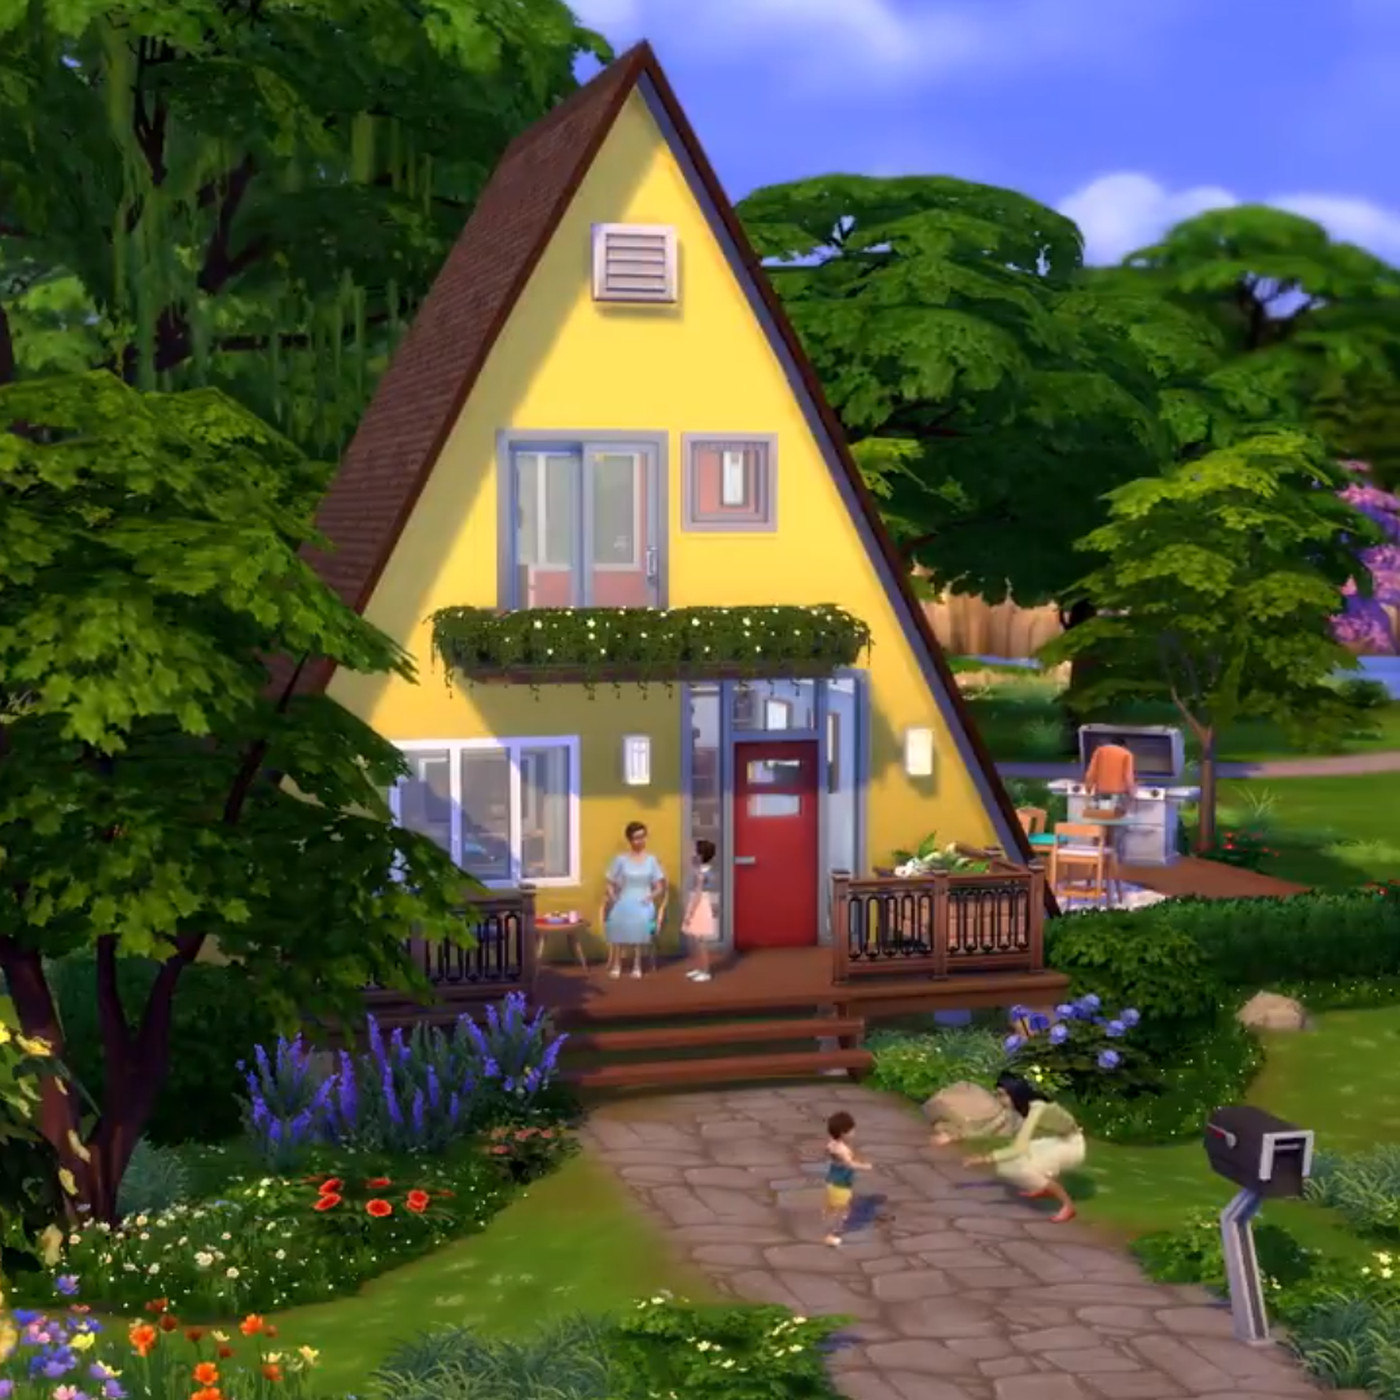 Tiny Living Stuff Pack coming to The Sims 24 - Polygon